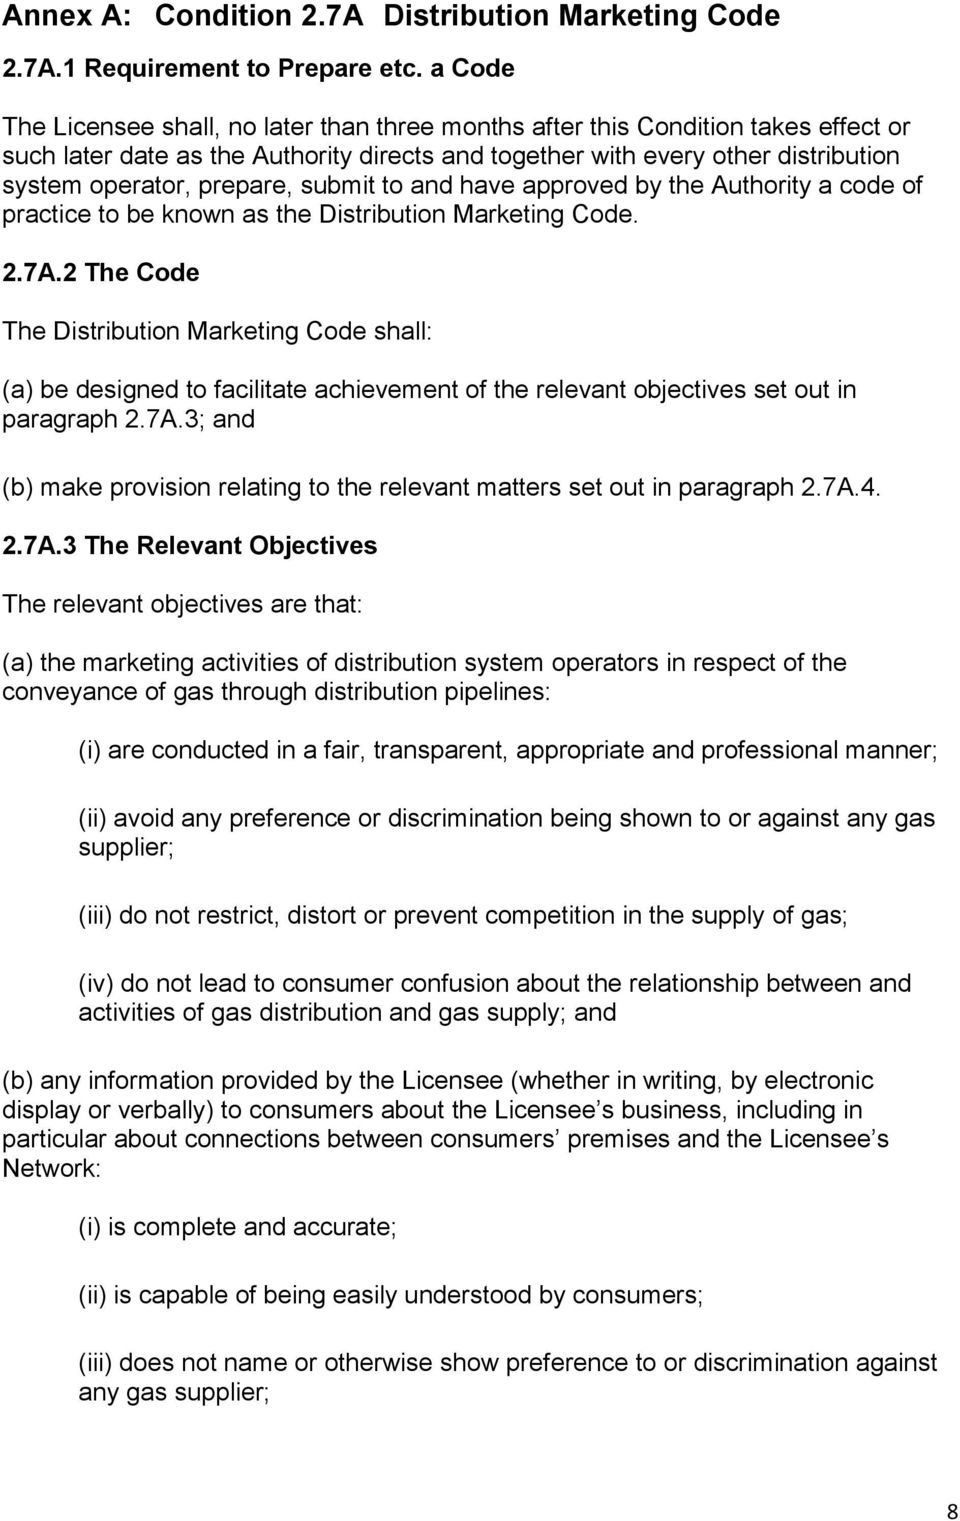 prepare, submit to and have approved by the Authority a code of practice to be known as the Distribution Marketing Code. 2.7A.